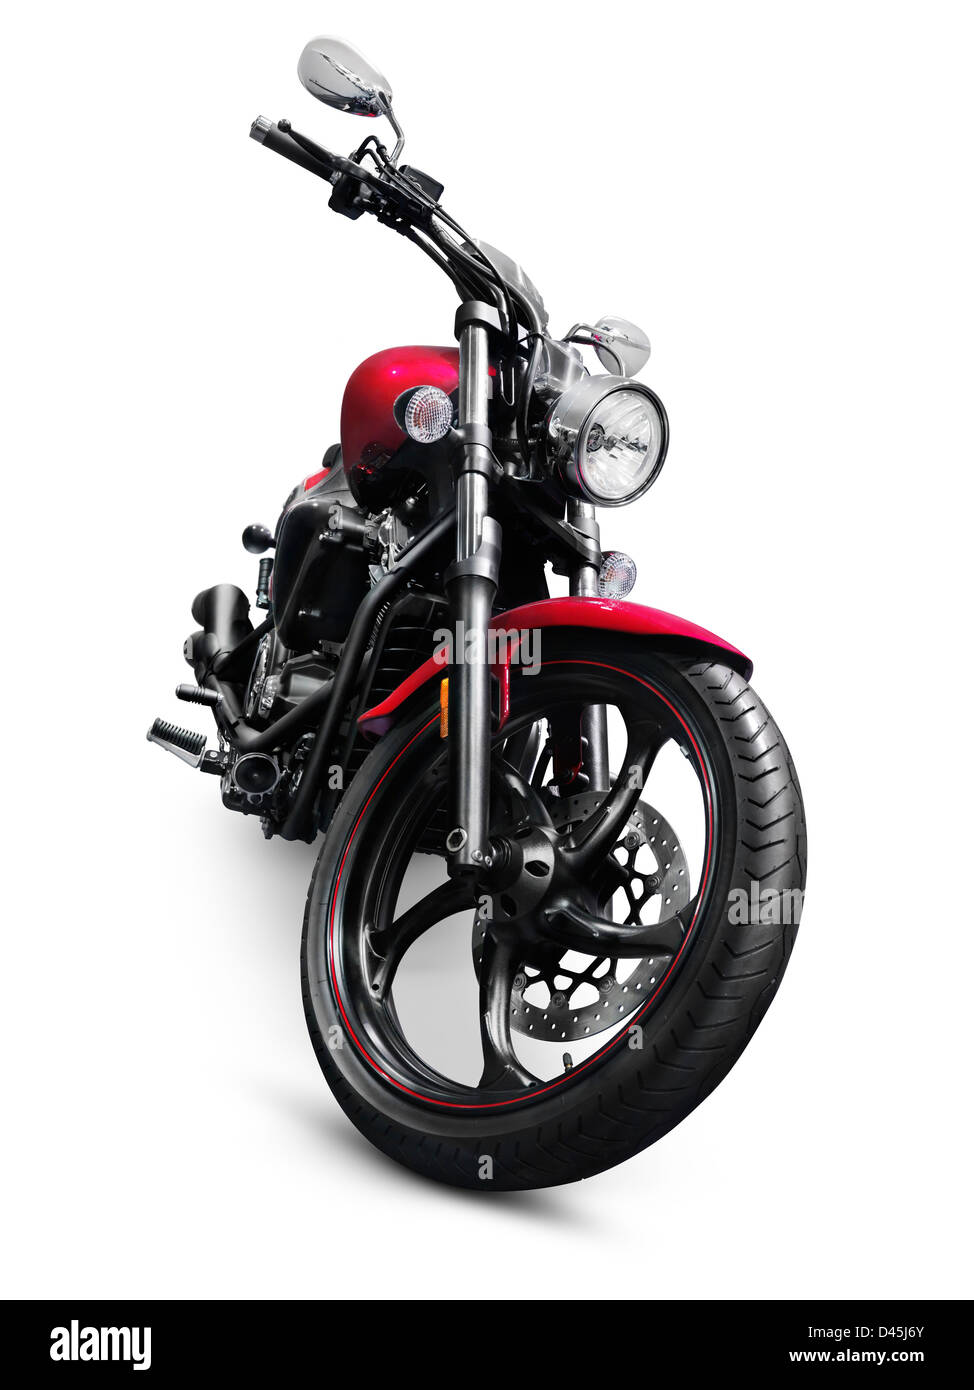 2013 Yamaha Star V 1300 motorbike. Isolated motorcycle on white background with clipping path - Stock Image